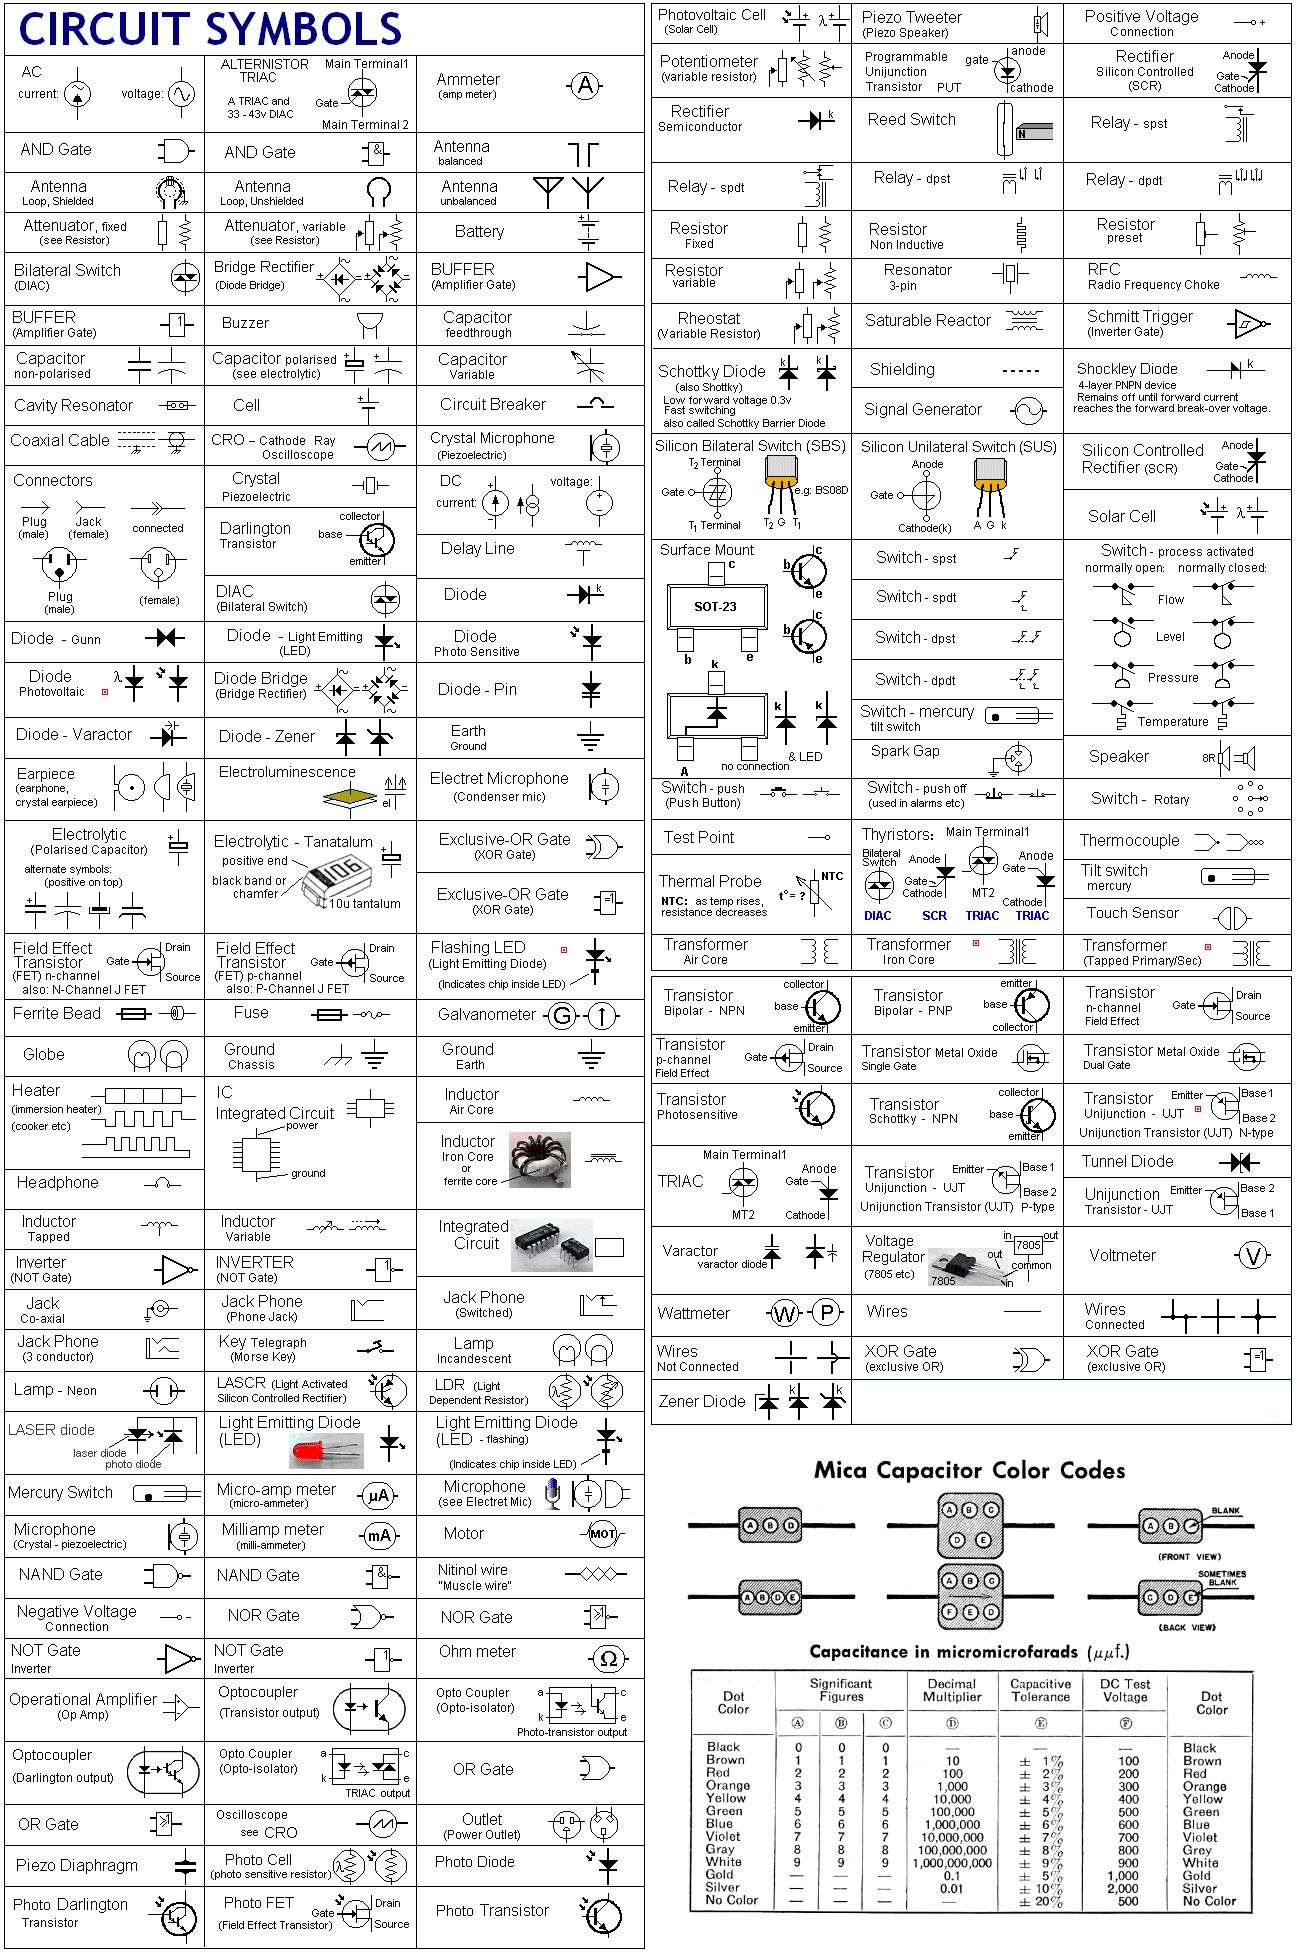 Wiring Diagram Symbols Chart - Wiring Diagram